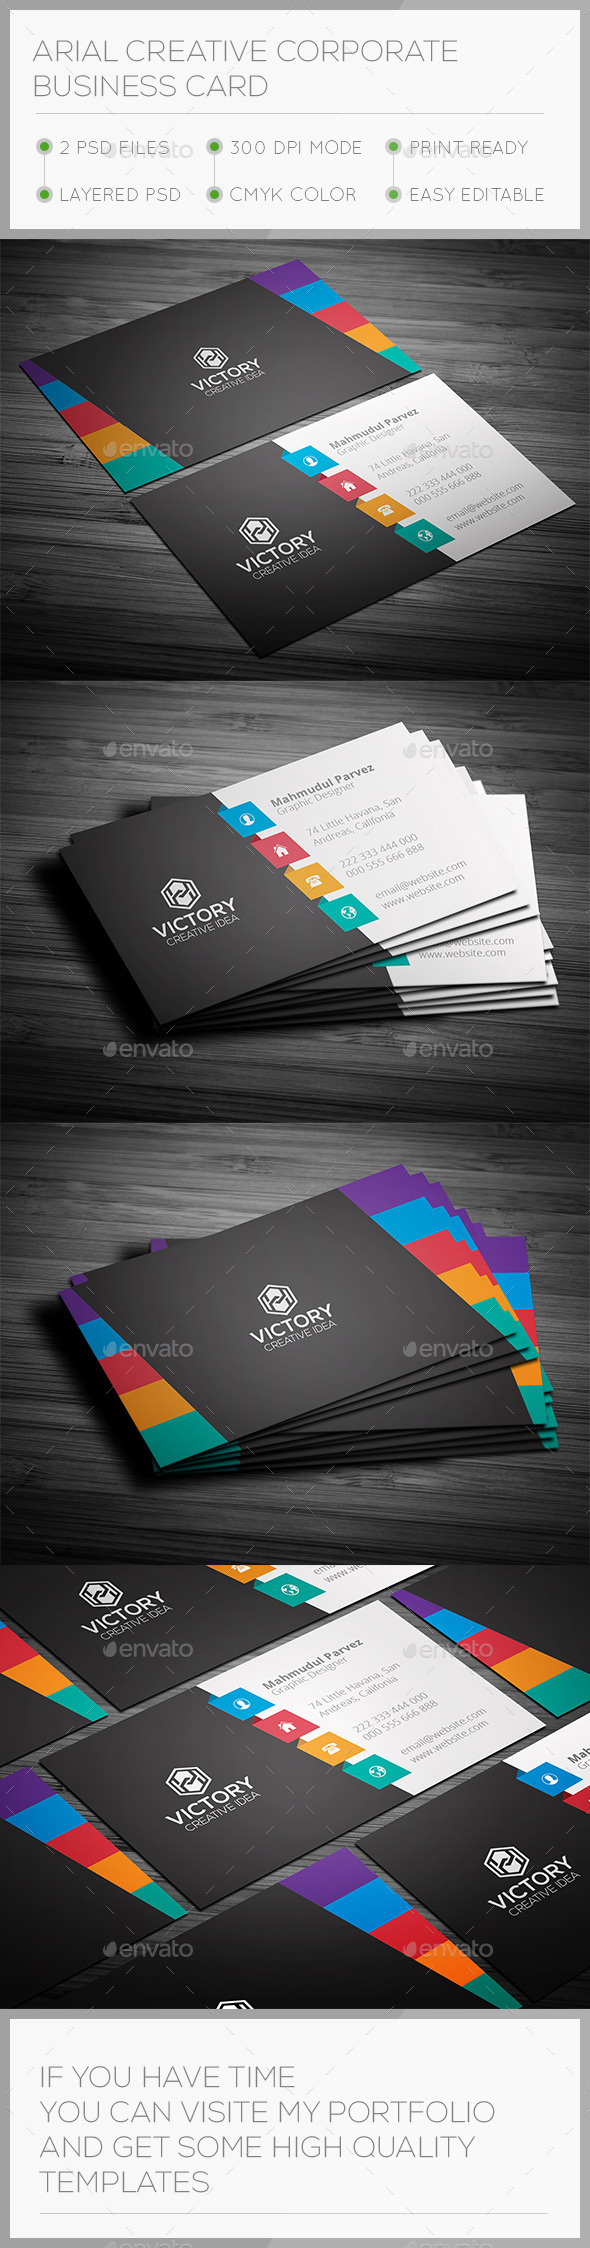 GraphicRiver Arial Creative Business Card 9669239